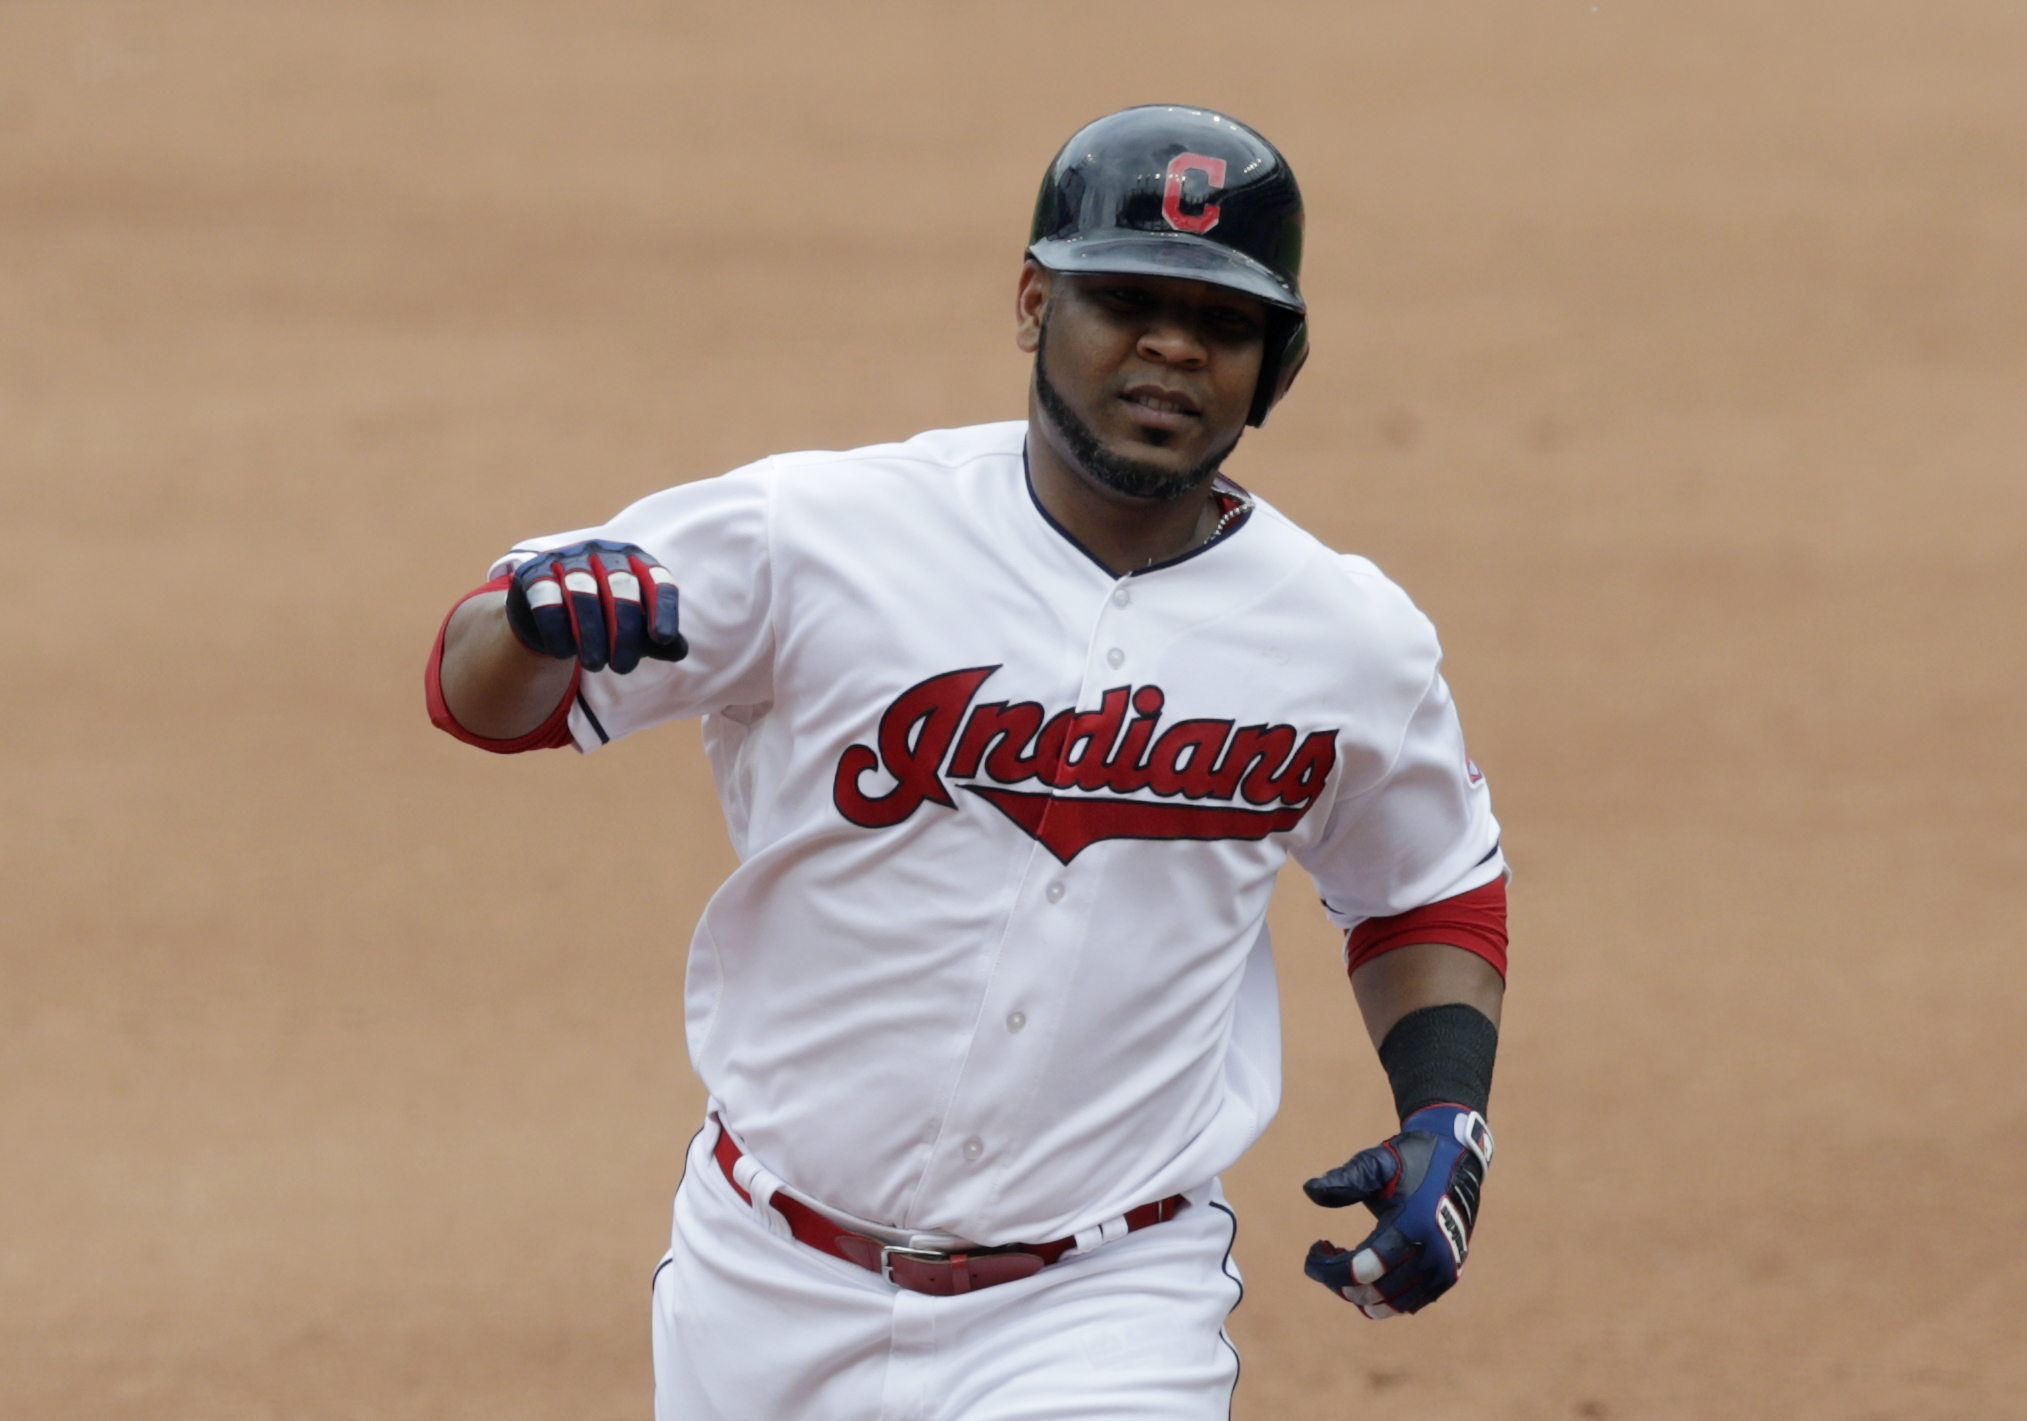 Edwin Encarnacion circles the bases after hitting a solo home run off White Sox relief pitcher Chris Volstad on May 30, 2018, in Cleveland. (AP Photo/Tony Dejak)